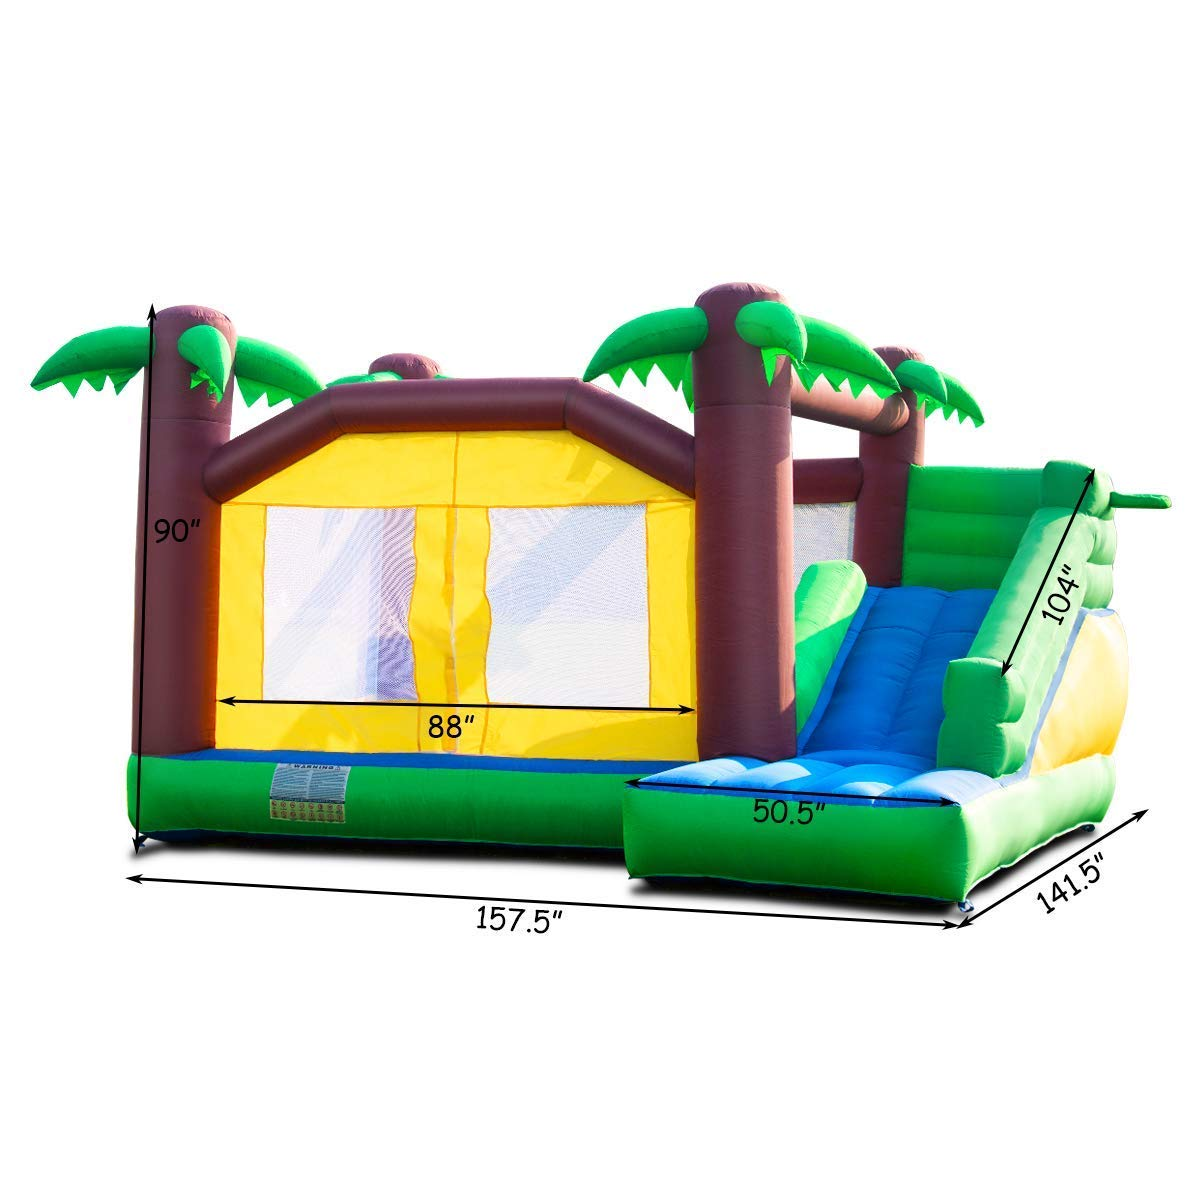 Costzon Inflatable Jungle Bounce House Jump and Slide Bouncer Castle (Bouncer with 950W Blower) by Costzon (Image #7)